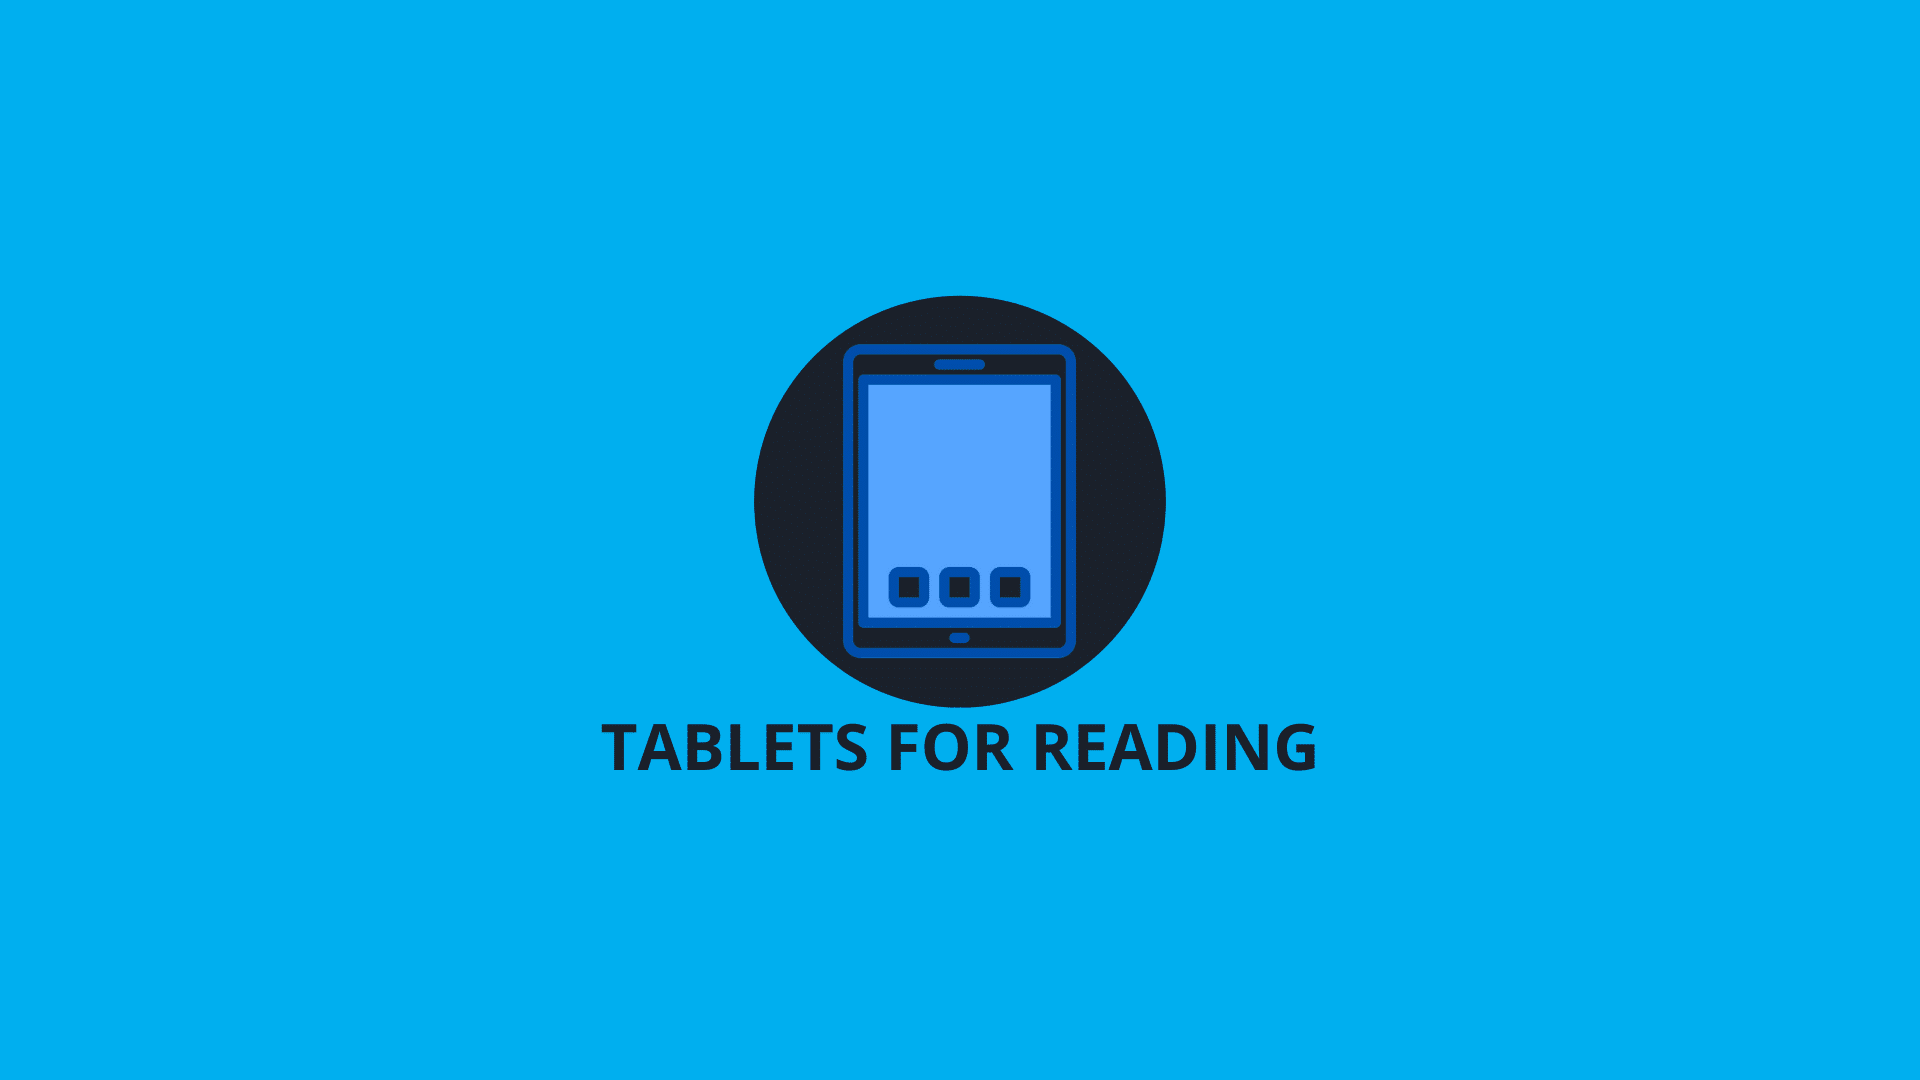 Tablets for Reading